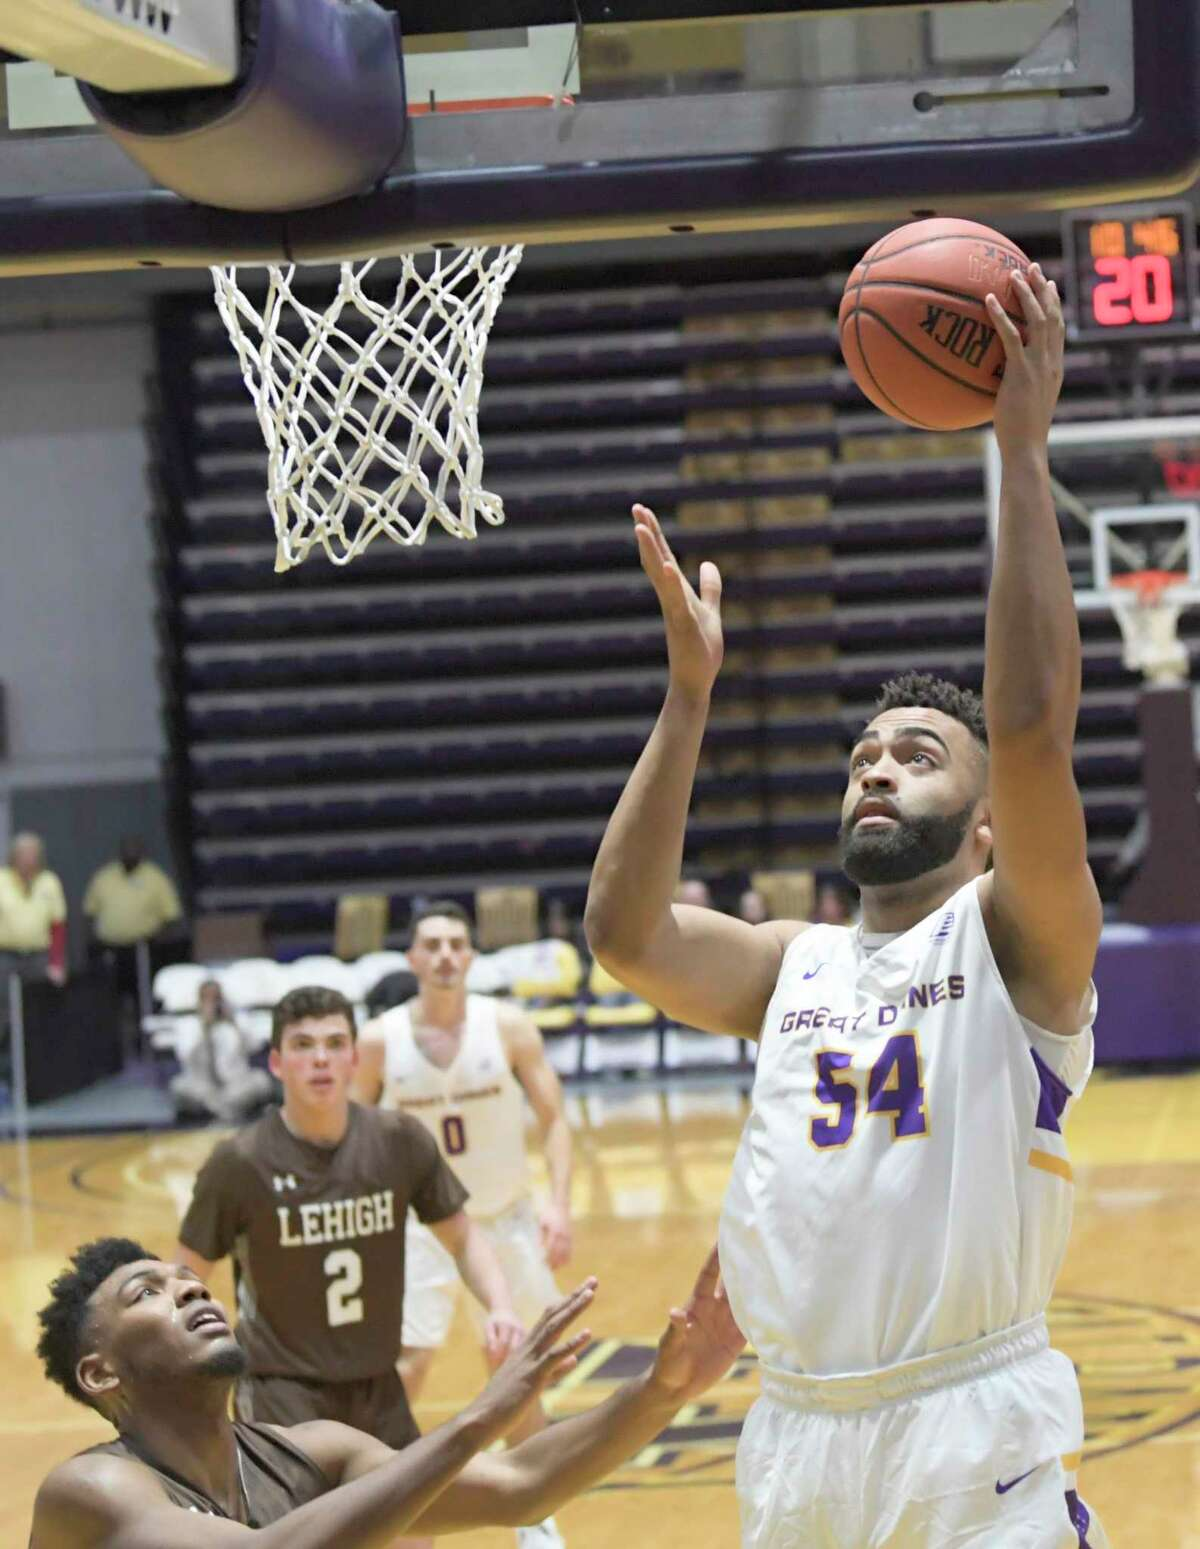 University at Albany forward Kendall Lauderdale (54) scores against Lehigh during the second half of their home opener NCAA basketball game Saturday, Nov. 9, 2019, in Albany, N.Y. Lehigh won 74-70. (Hans Pennink / Special to the Times Union)